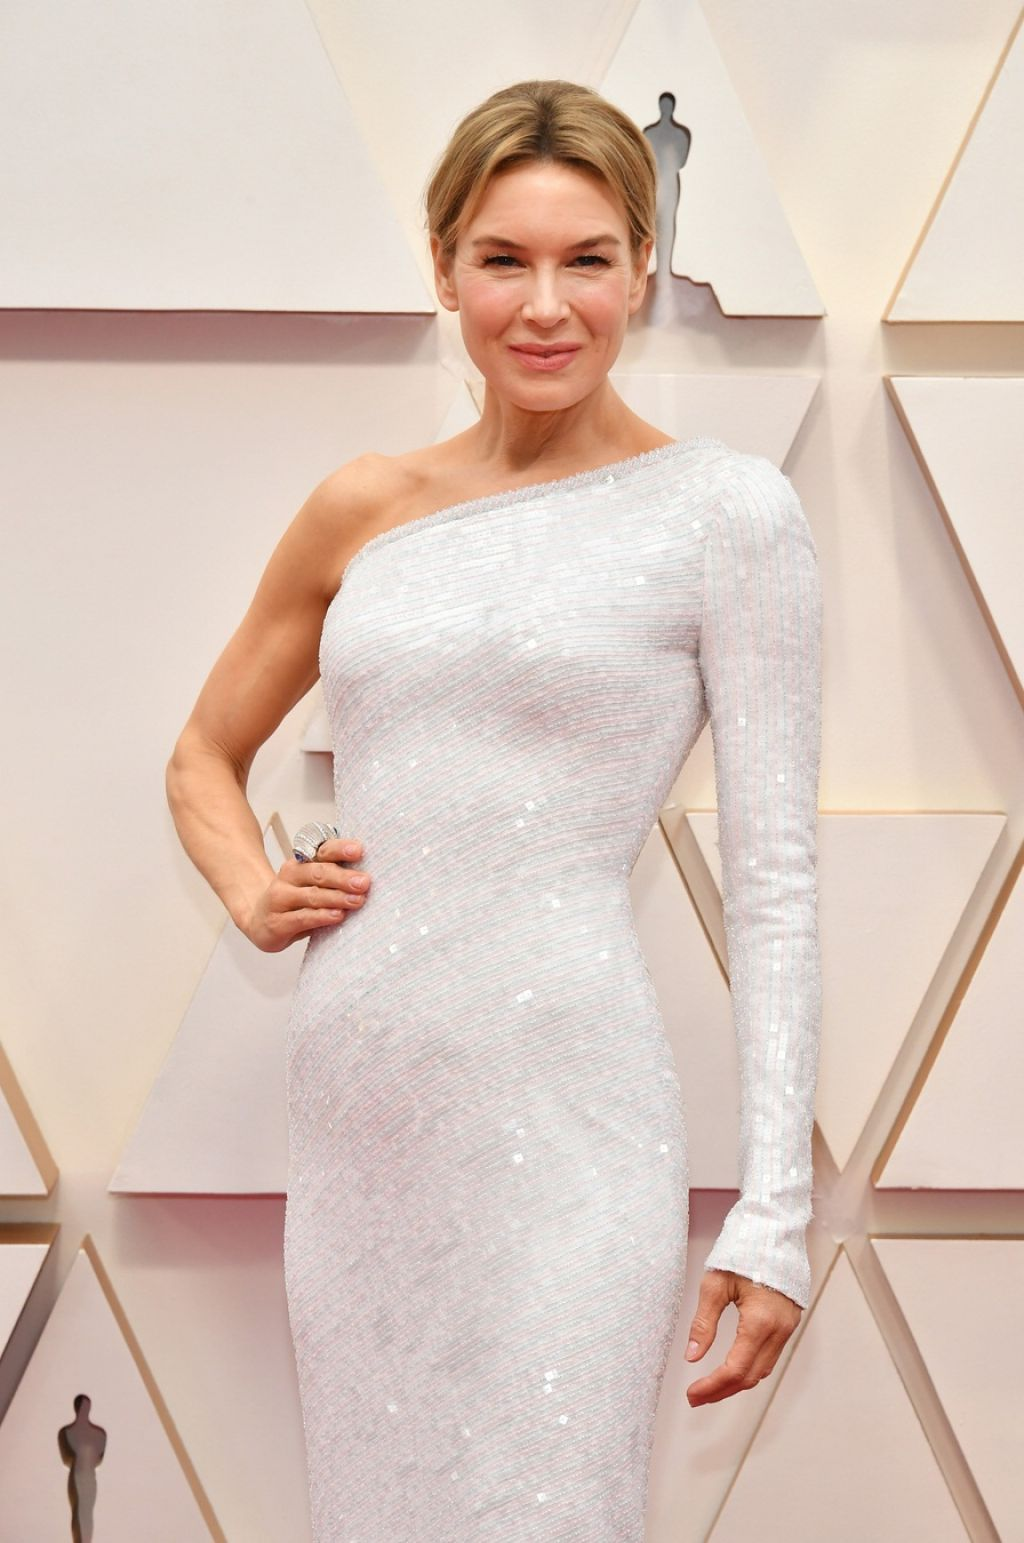 Renee Zellweger highlights hourglass curves in Armani Prive at the 2020 Oscars